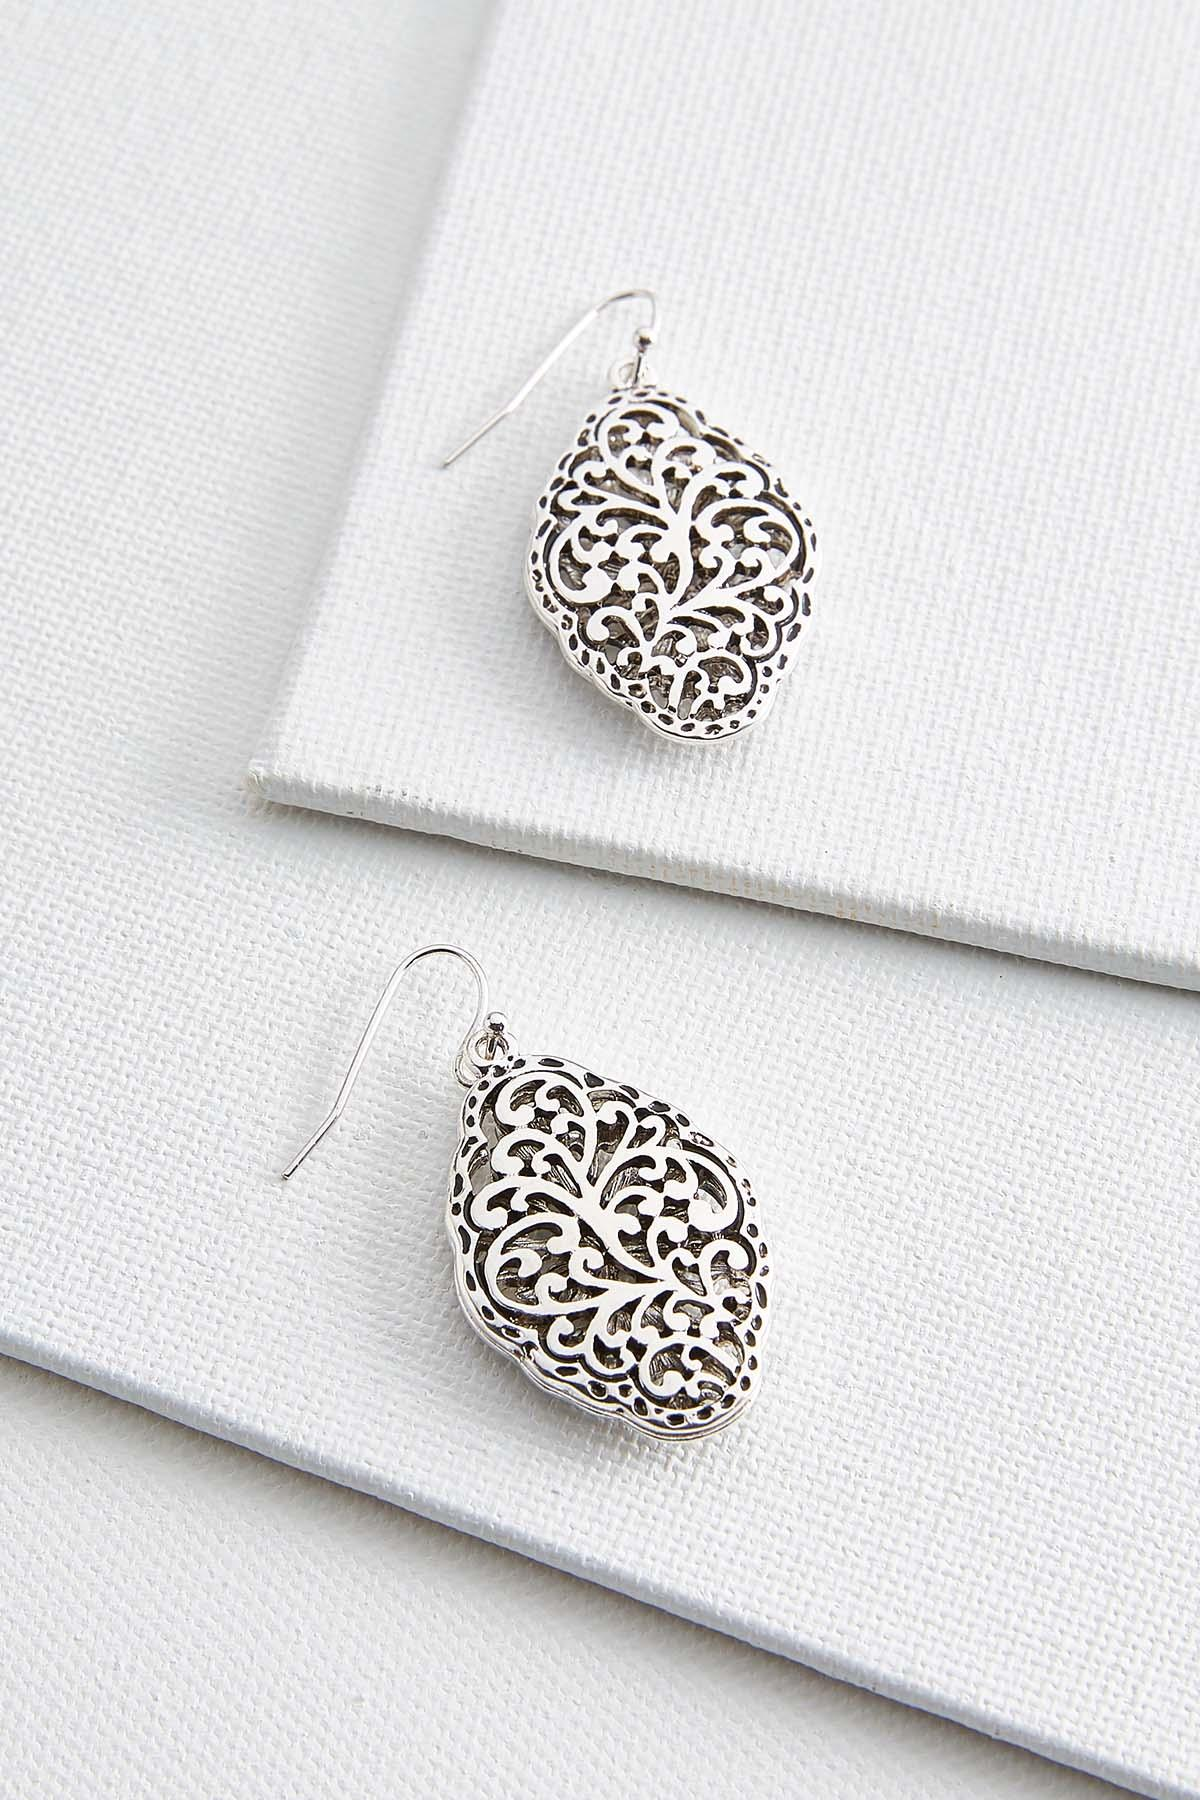 Antique Scroll Earrings